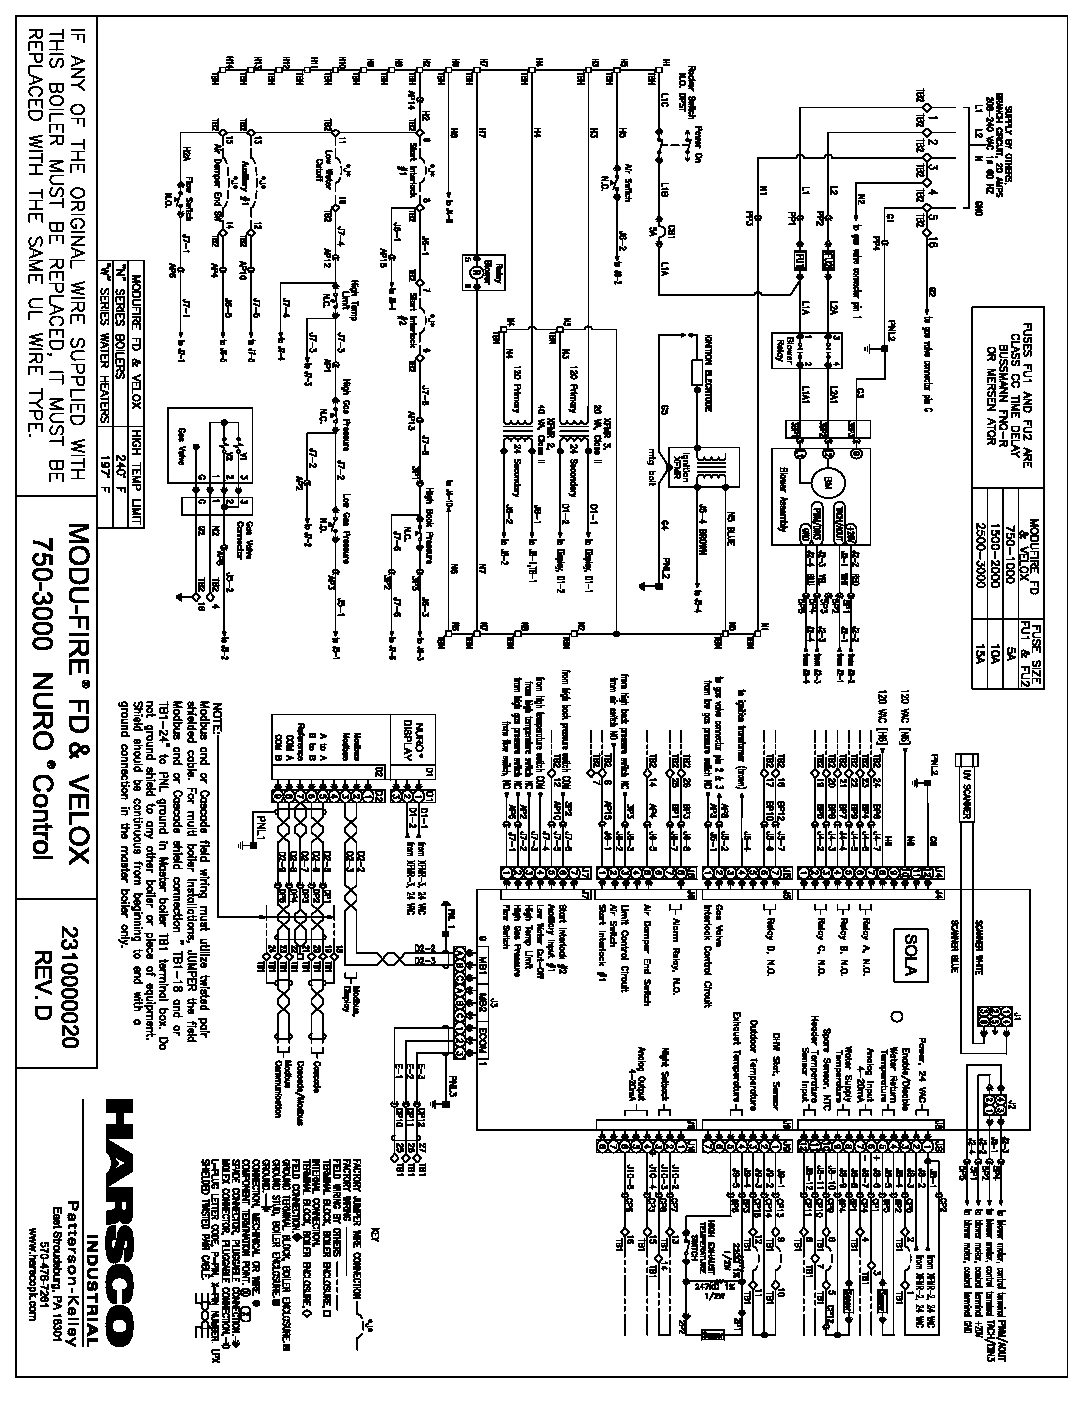 Wiring Diagram For Clepco Intelligent Heater Controls